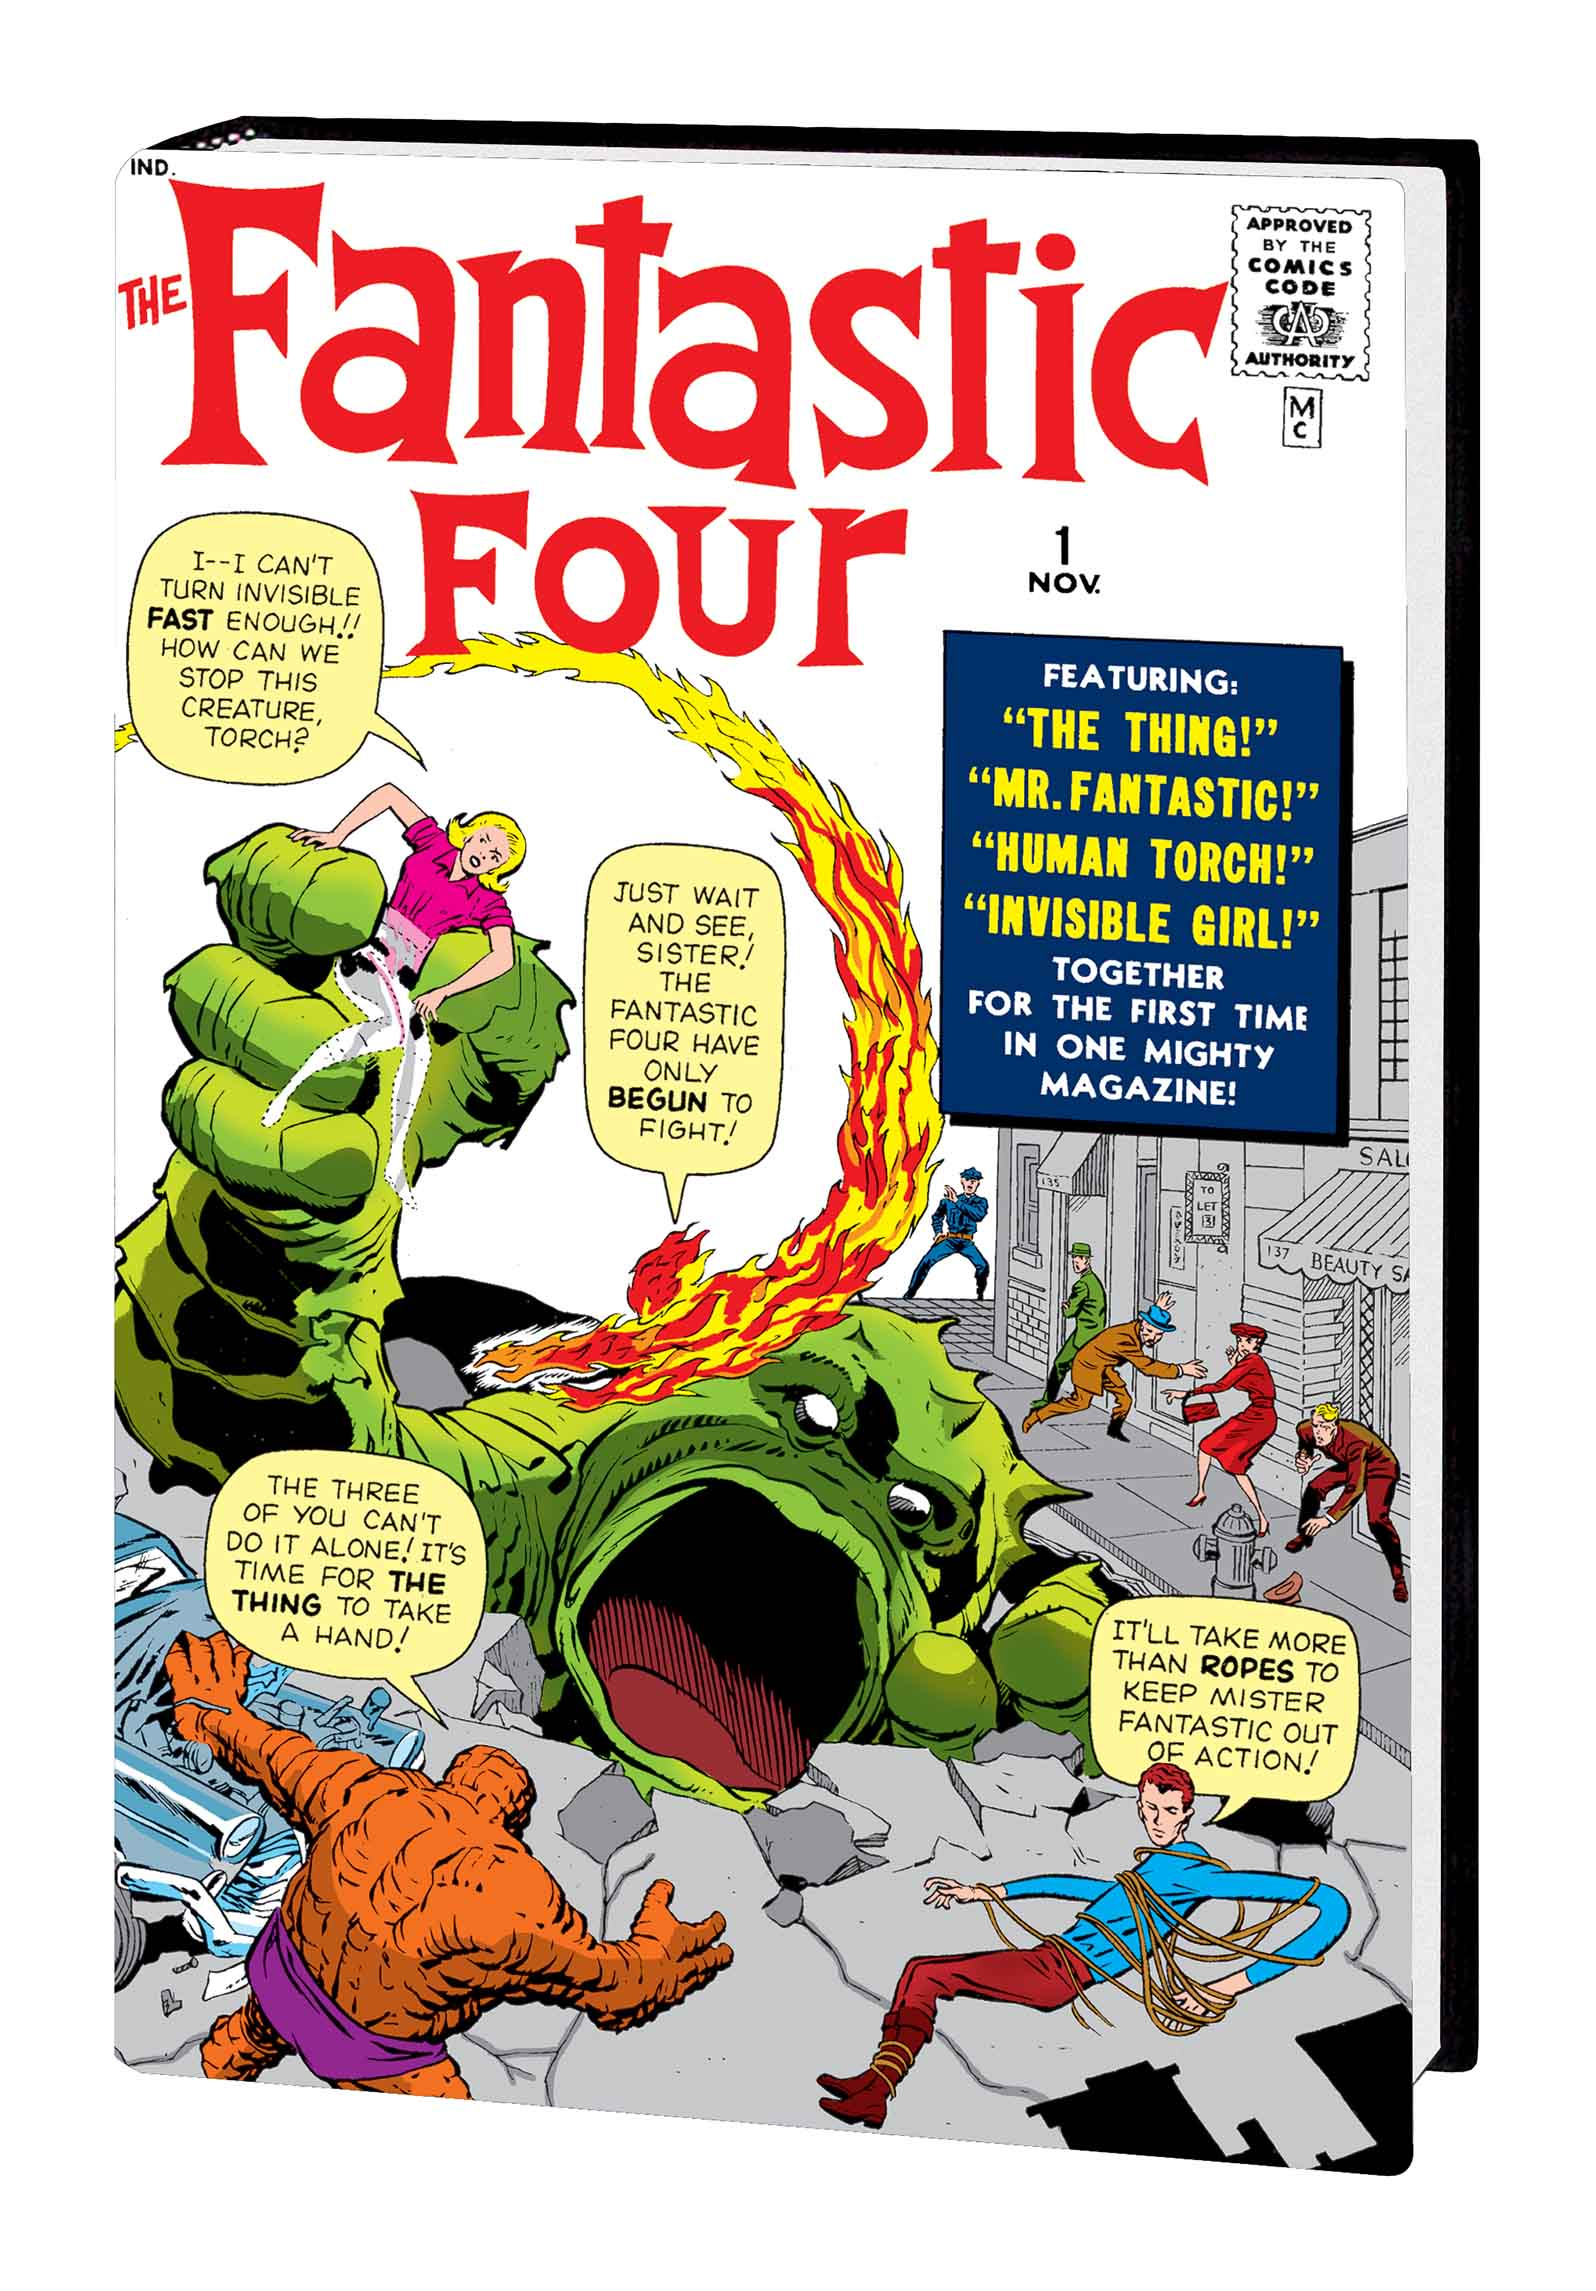 THE FANTASTIC FOUR OMNIBUS VOL. 1 HC (NEW PRINTING) (Hardcover)